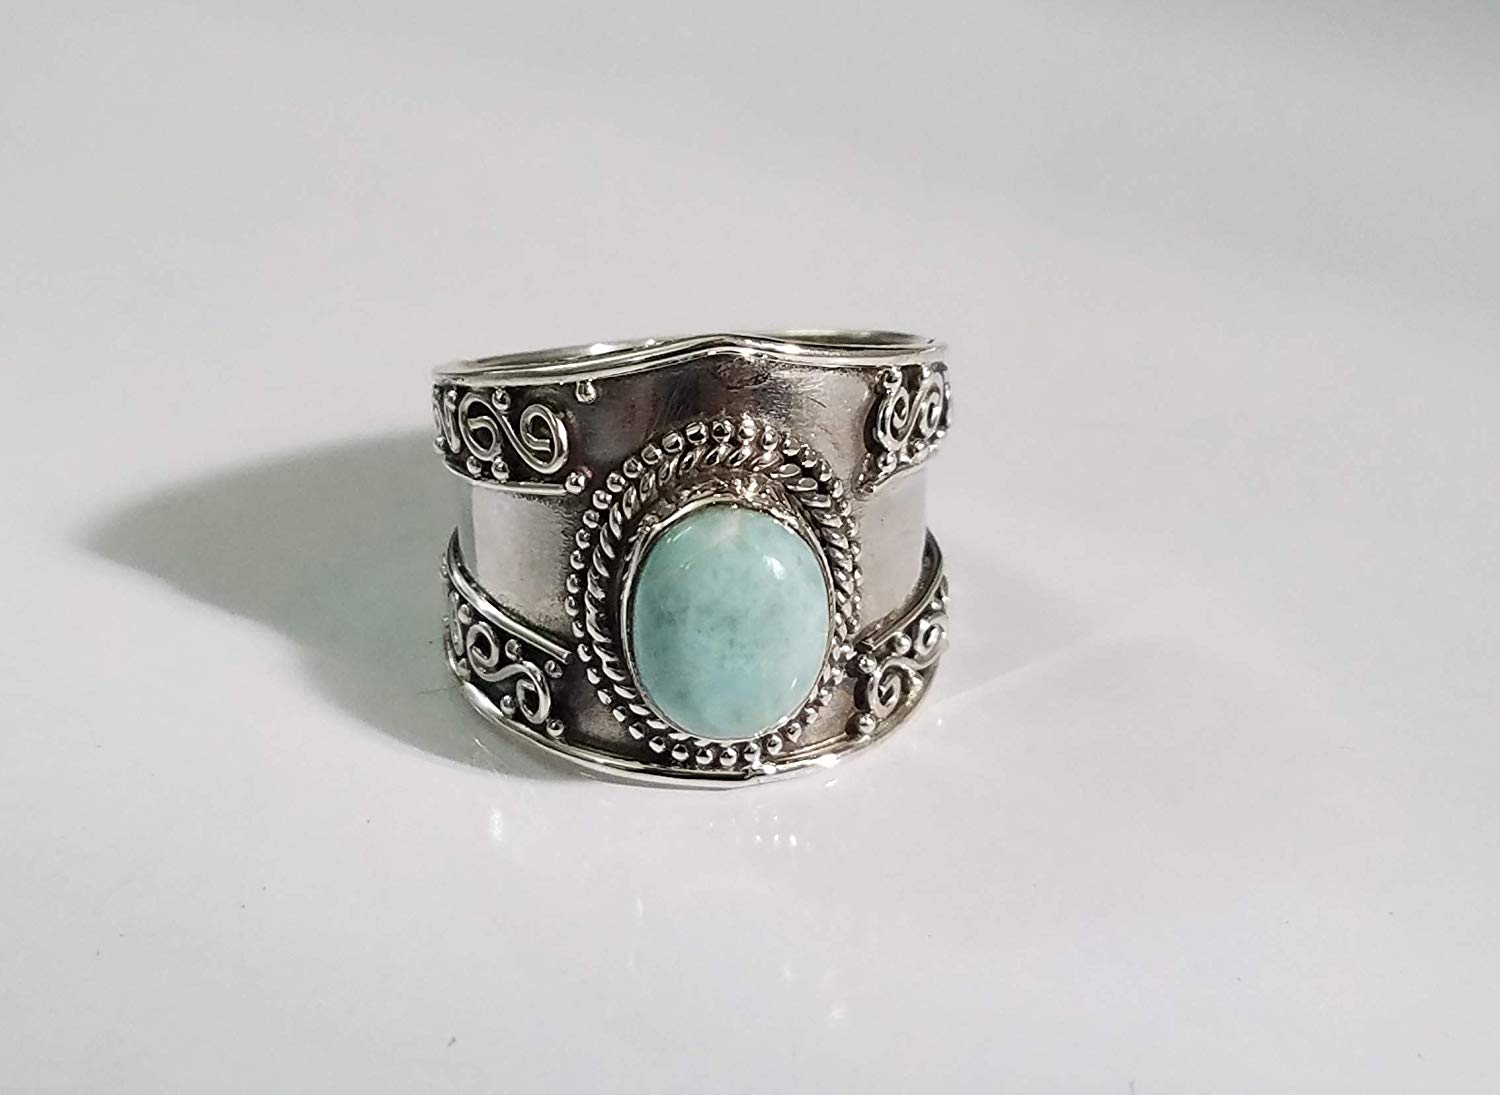 Larimar Ring.925 Sterling Silver.Natural Blue Ring.Wide Band Ring.Dominican Republic Larimar.Classic Modern Design.Bohemian Tribal Ring.Handmade Ethnic Gypsy.Extremely Unusual Ring.Gift Her